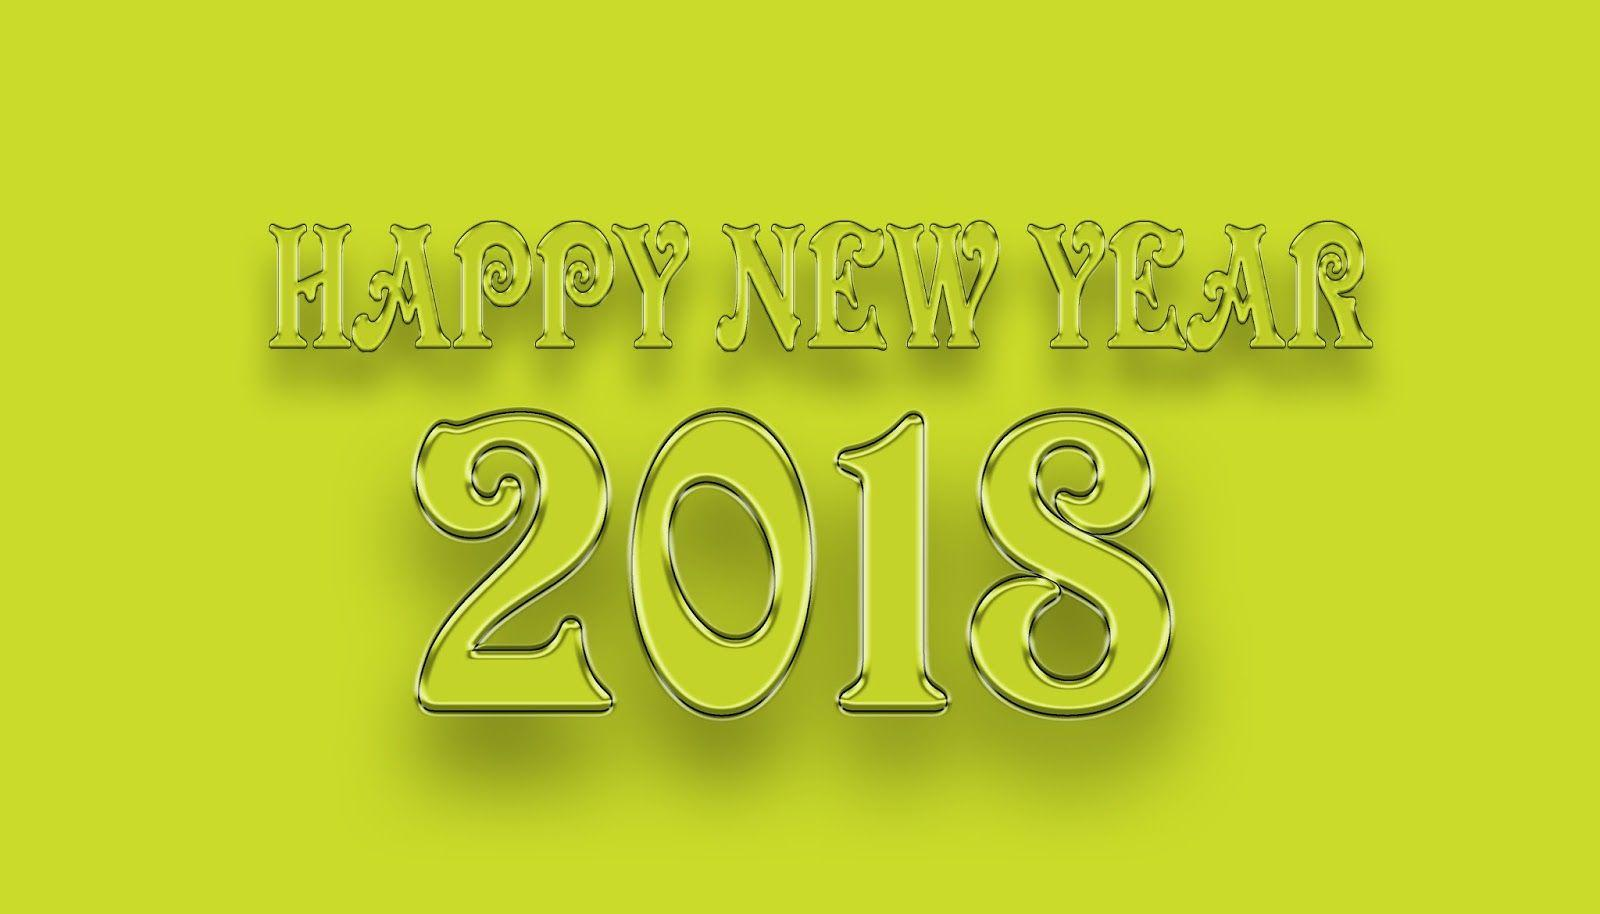 Happy New Year 2018 HD Wallpapers - Wallpaper Cave